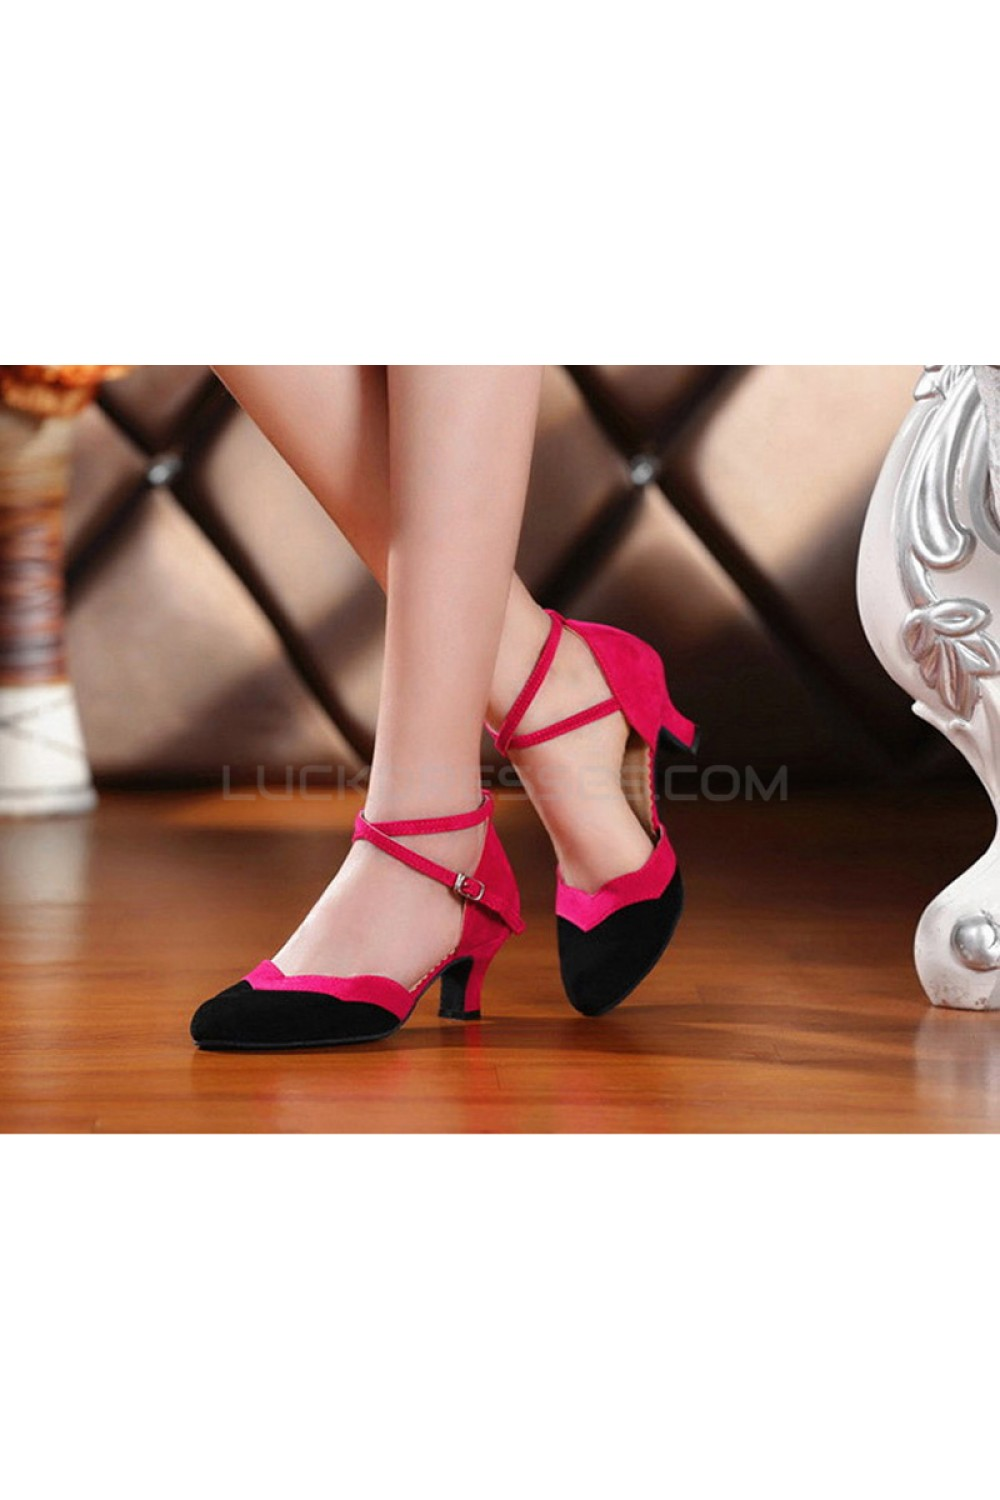 af0604a96 Women s Leatherette Heels With Ankle Strap Latin Ballroom Dance ...